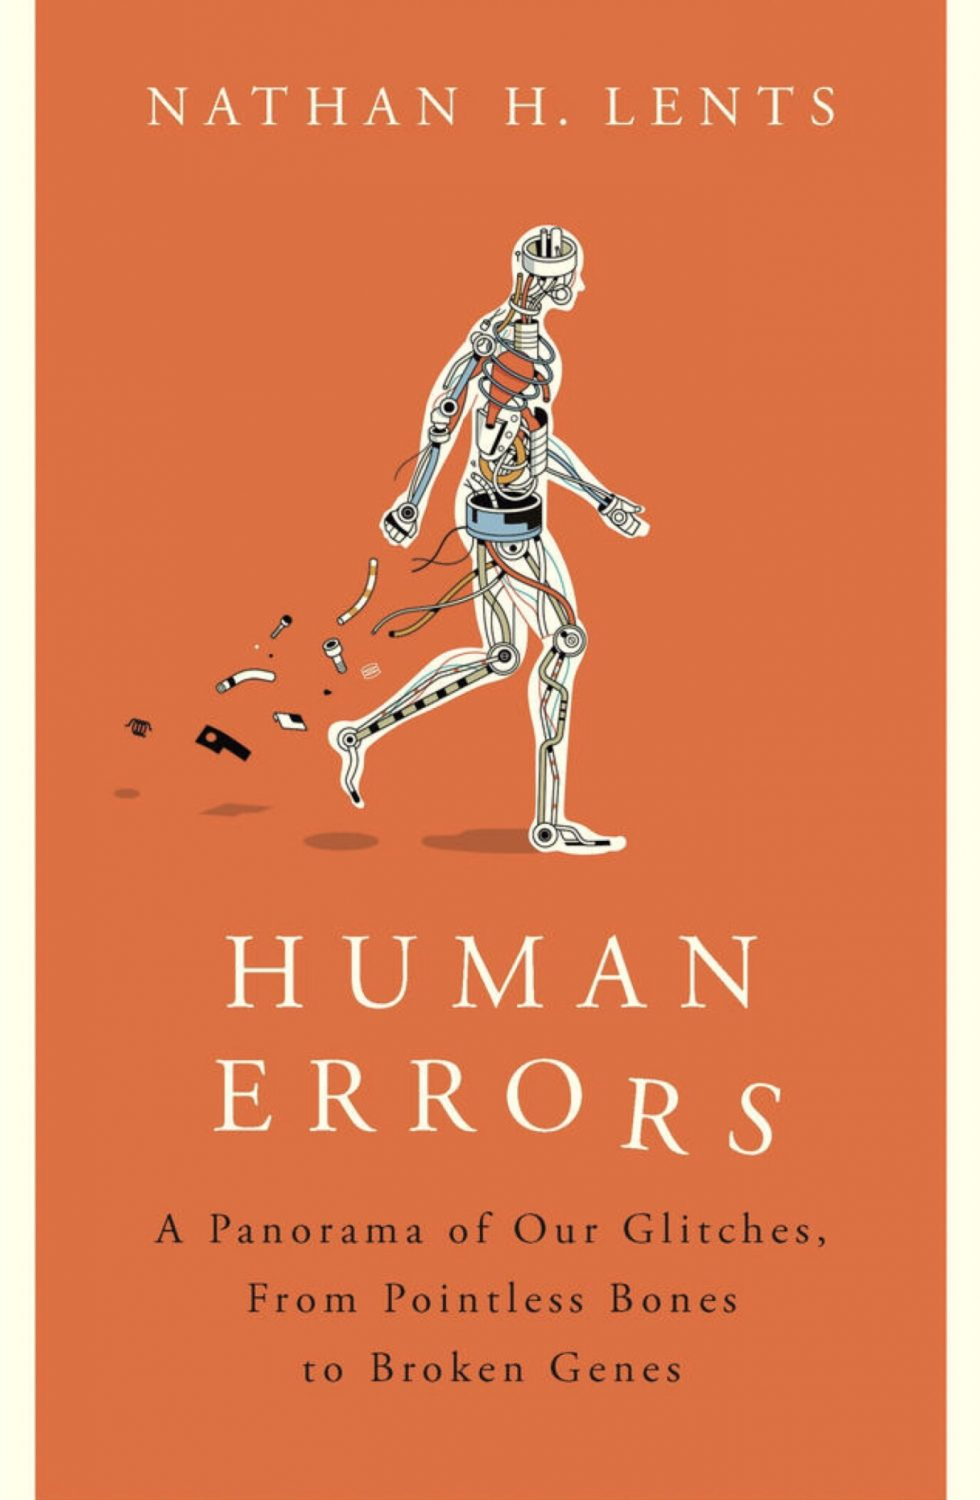 Now Reading: Human Errors - Quantum Tunnel